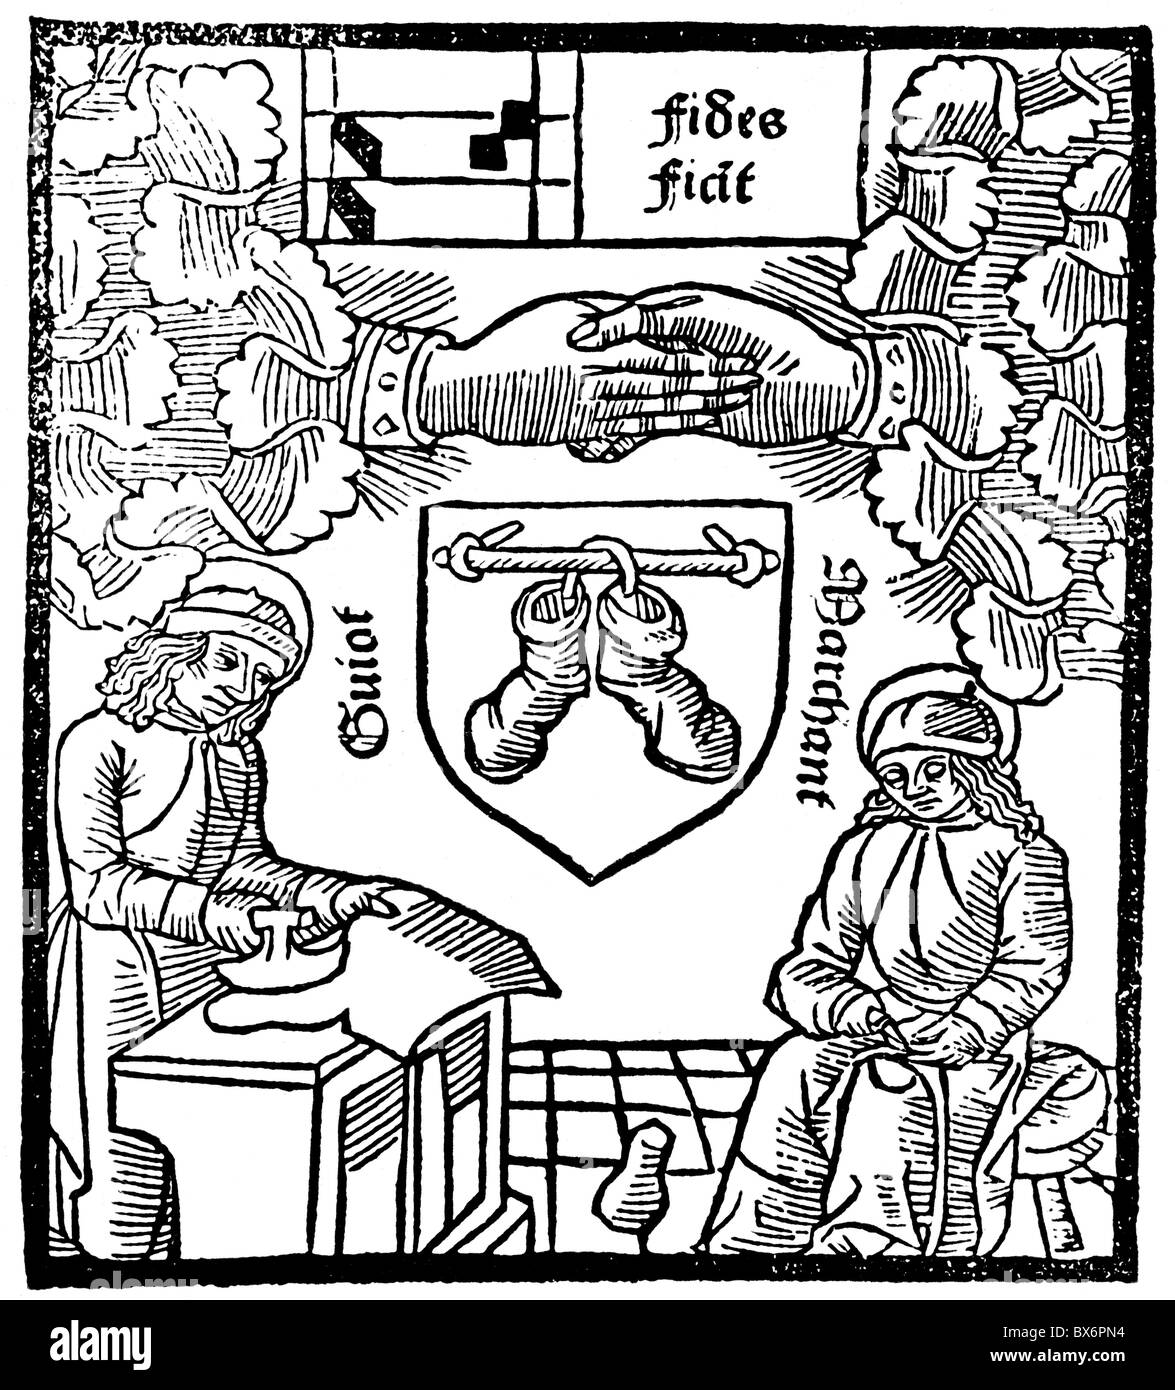 handcraft, guilds, guild sign of the shoemakers, woodcut, Faustus Andrelinus, Paris, 1494, Additional-Rights-Clearences - Stock Image